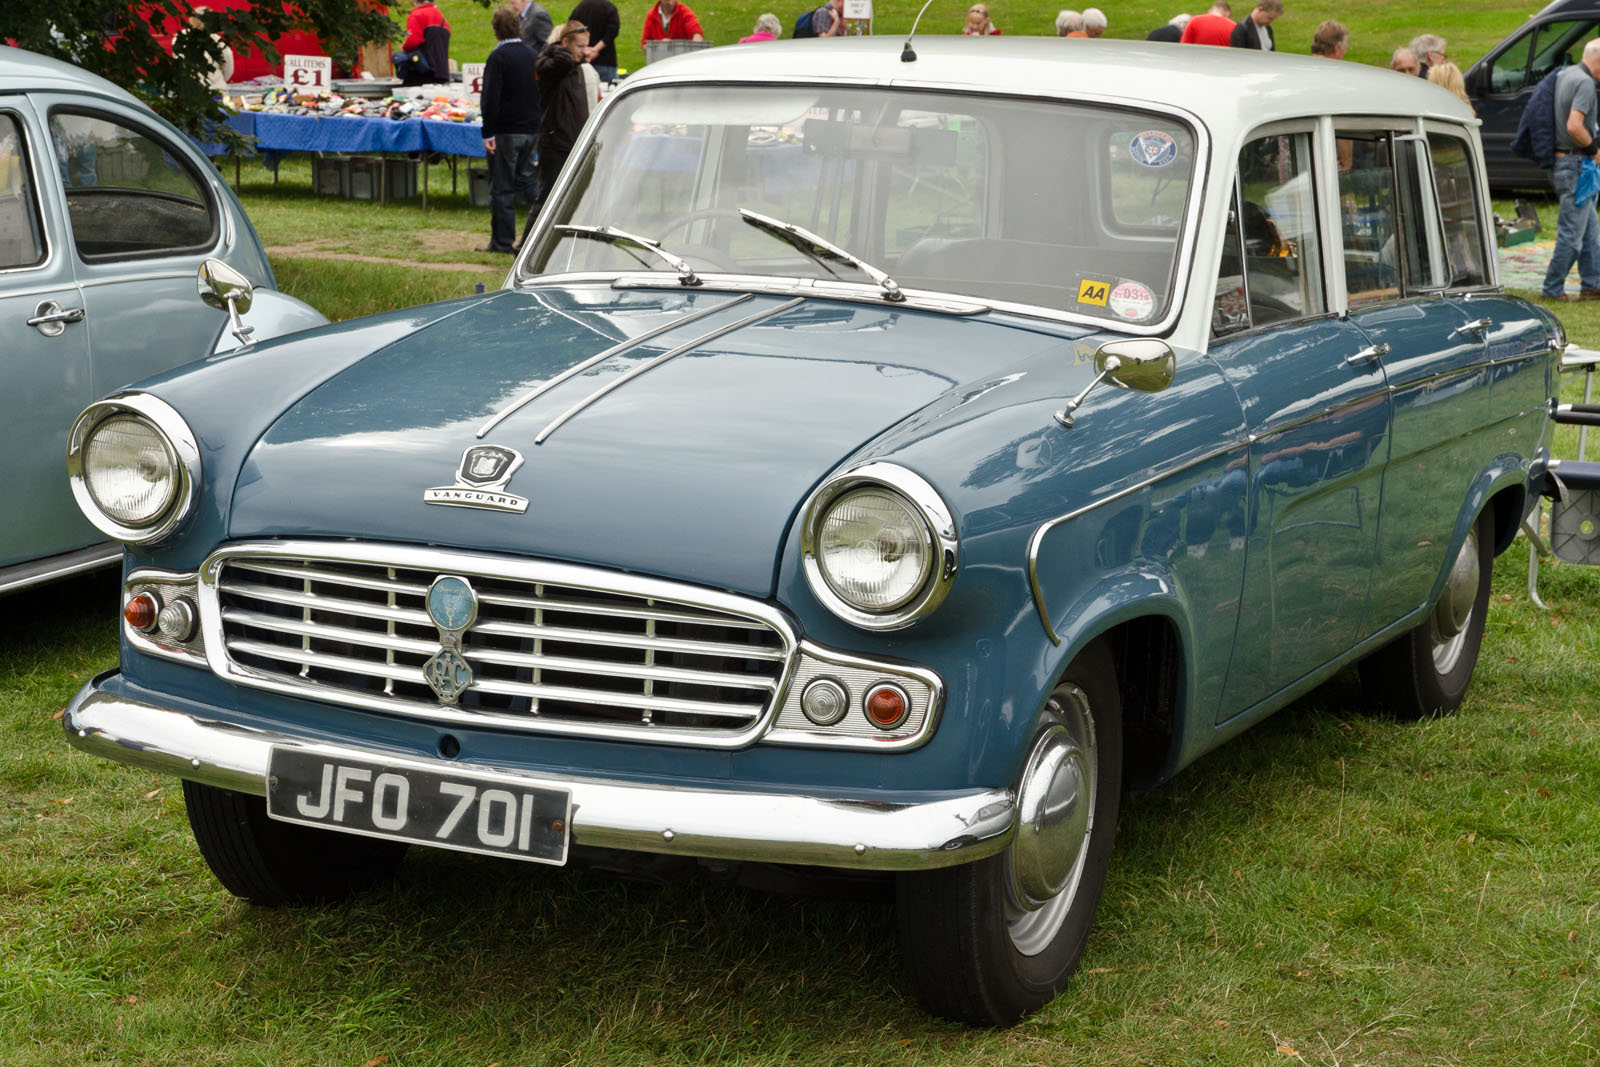 File:Standard Vanguard Estate (1961) - 10275798725.jpg - Wikimedia ...